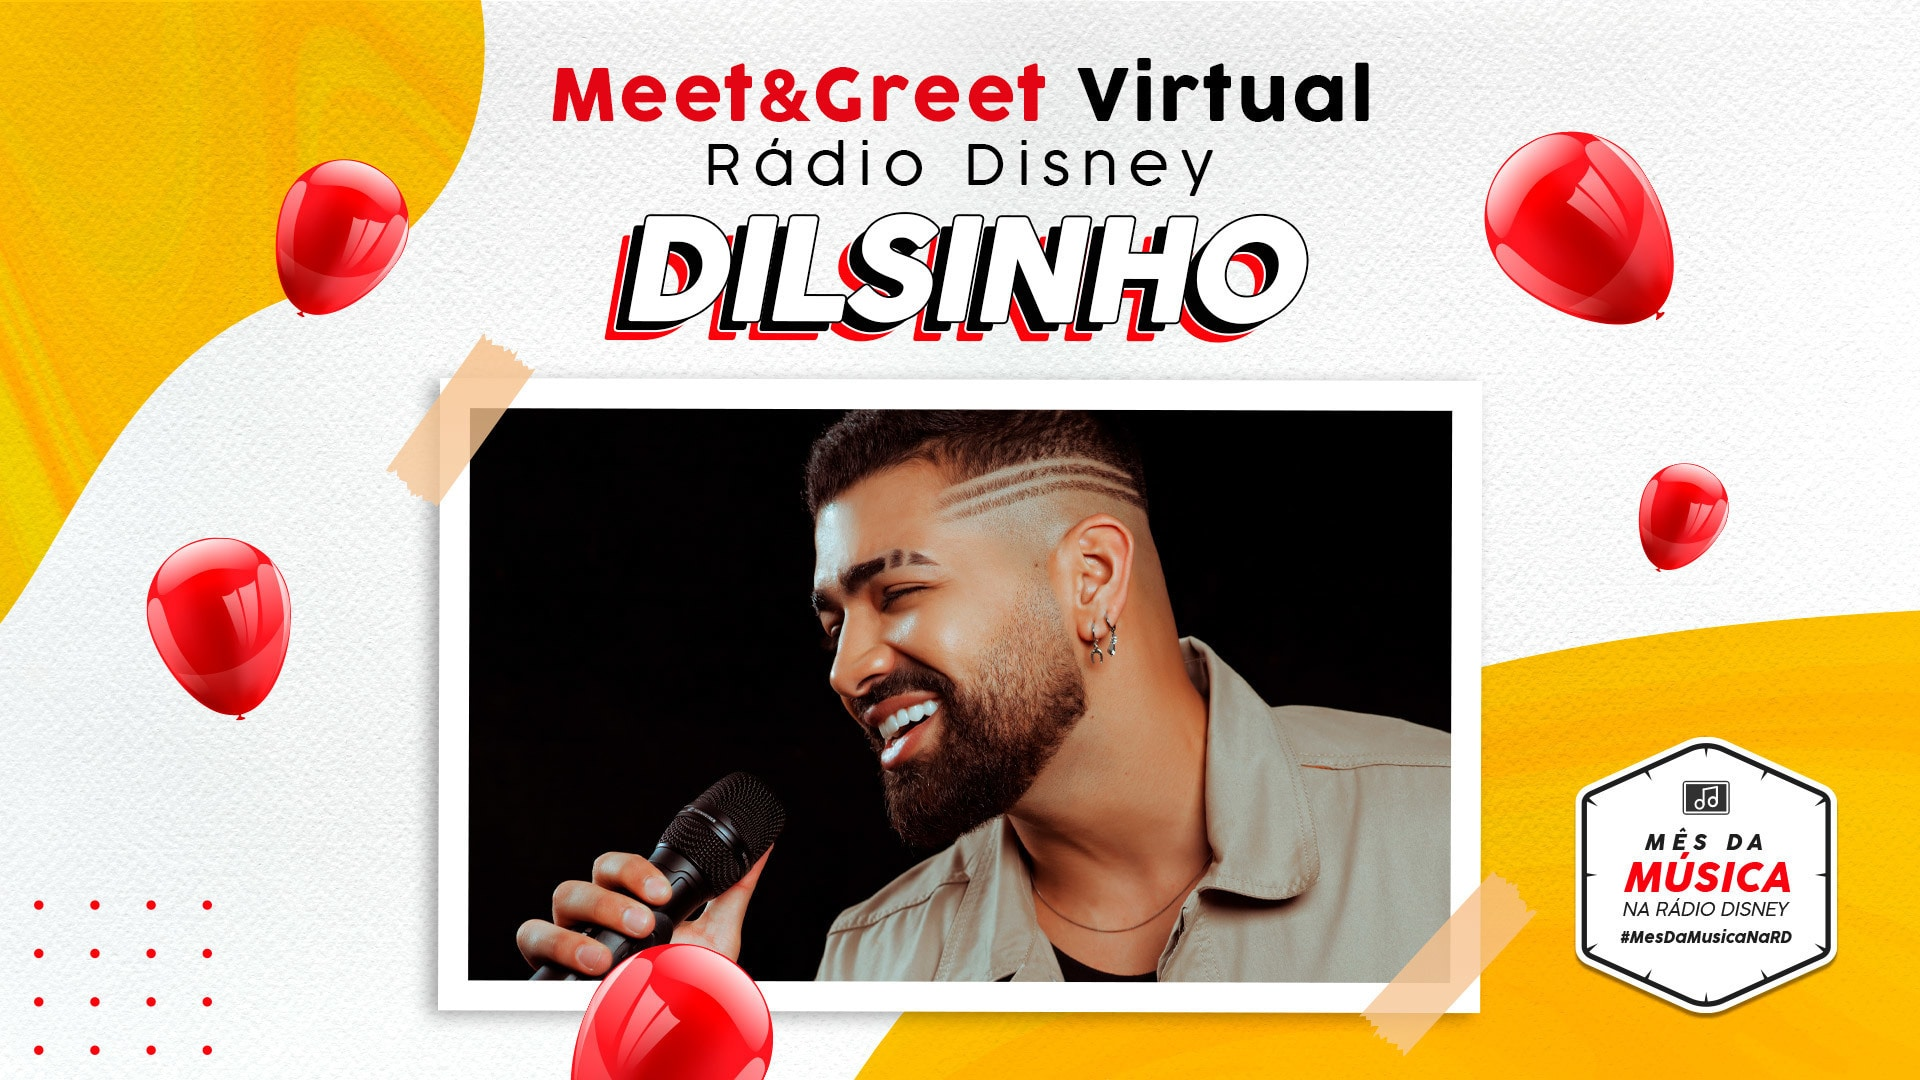 MEET & GREET RÁDIO DISNEY VIRTUAL - DILSINHO